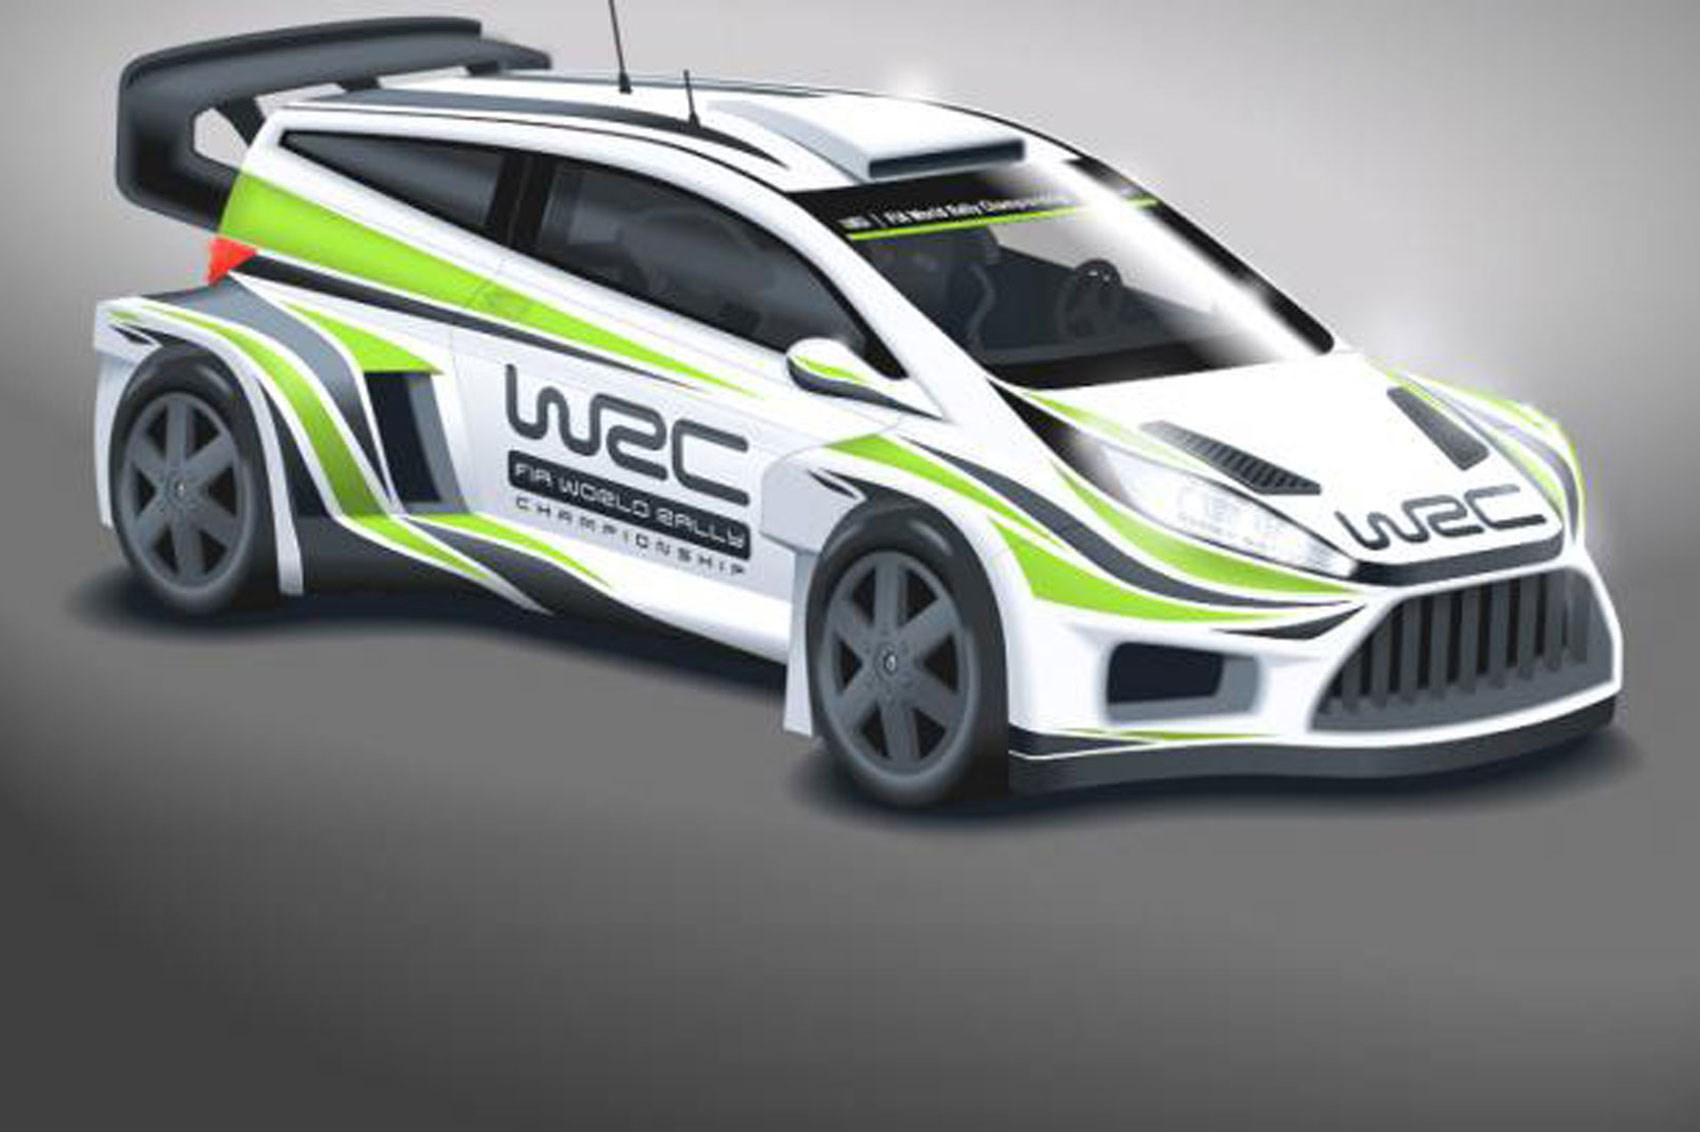 Ultrablogus  Pleasing Wild New Look For Wrc Cars In  By Car Magazine With Luxury Wrc Cars Will Get Wider Bodies Bigger Wings And More Power For  With Adorable  Audi A Interior Also  Civic Interior In Addition Nissan Gtr Custom Interior And  Interior As Well As Brz Premium Interior Additionally Golf R Interior From Carmagazinecouk With Ultrablogus  Luxury Wild New Look For Wrc Cars In  By Car Magazine With Adorable Wrc Cars Will Get Wider Bodies Bigger Wings And More Power For  And Pleasing  Audi A Interior Also  Civic Interior In Addition Nissan Gtr Custom Interior From Carmagazinecouk